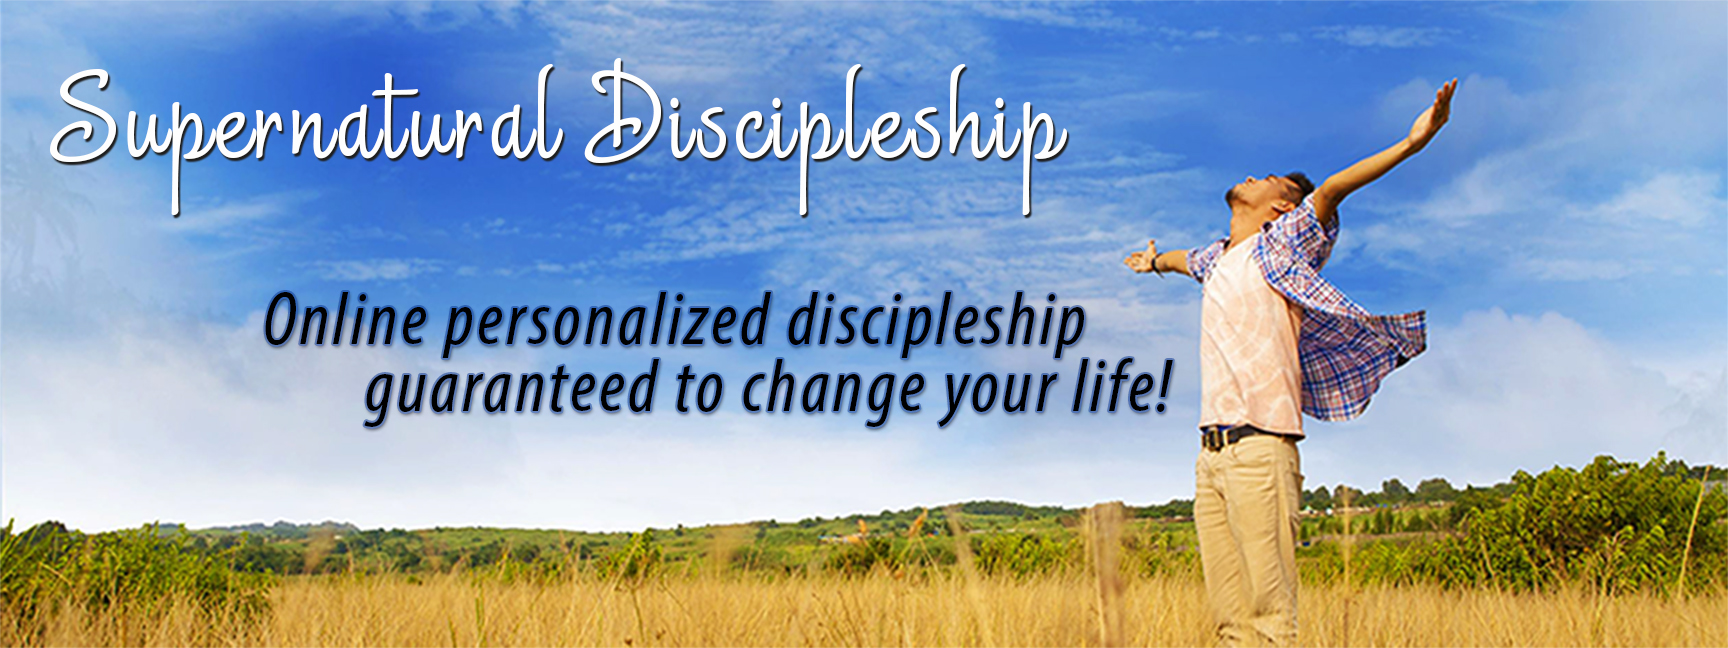 Supernatural Discipleship Program Information